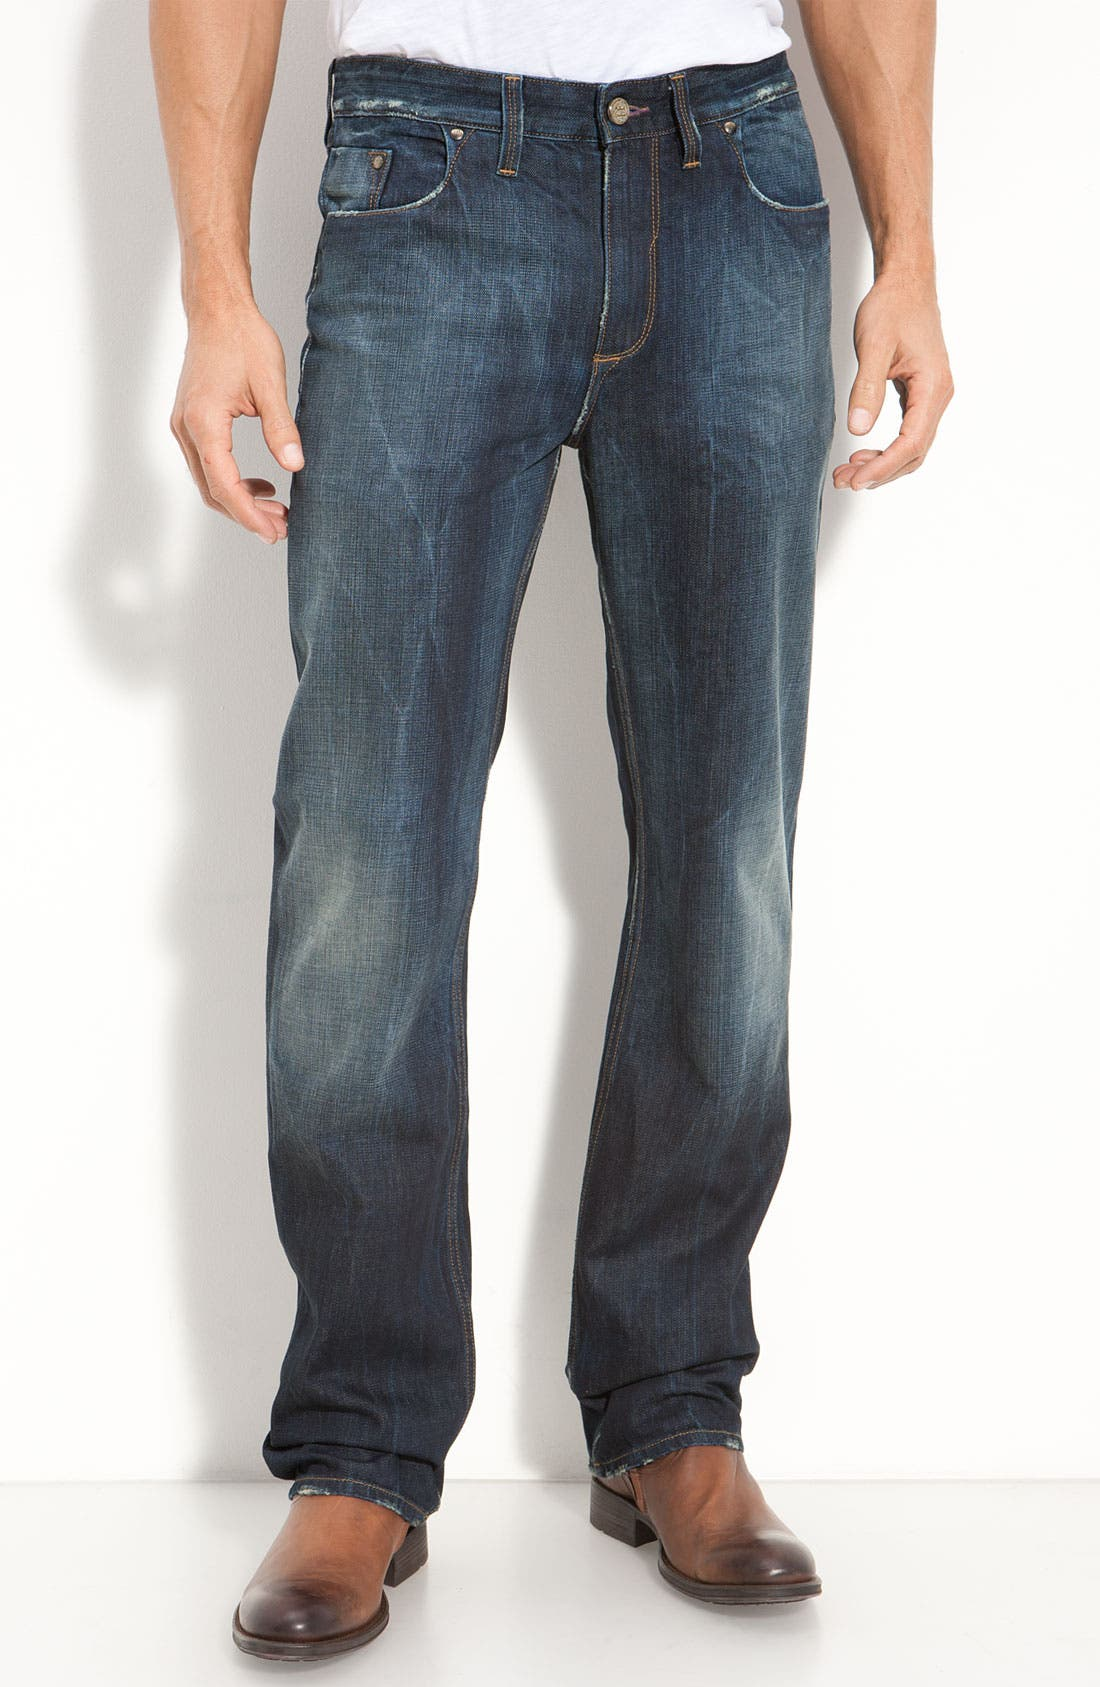 Alternate Image 1 Selected - Robert Graham Jeans 'Yates' Classic Fit Jeans (Atlantic)